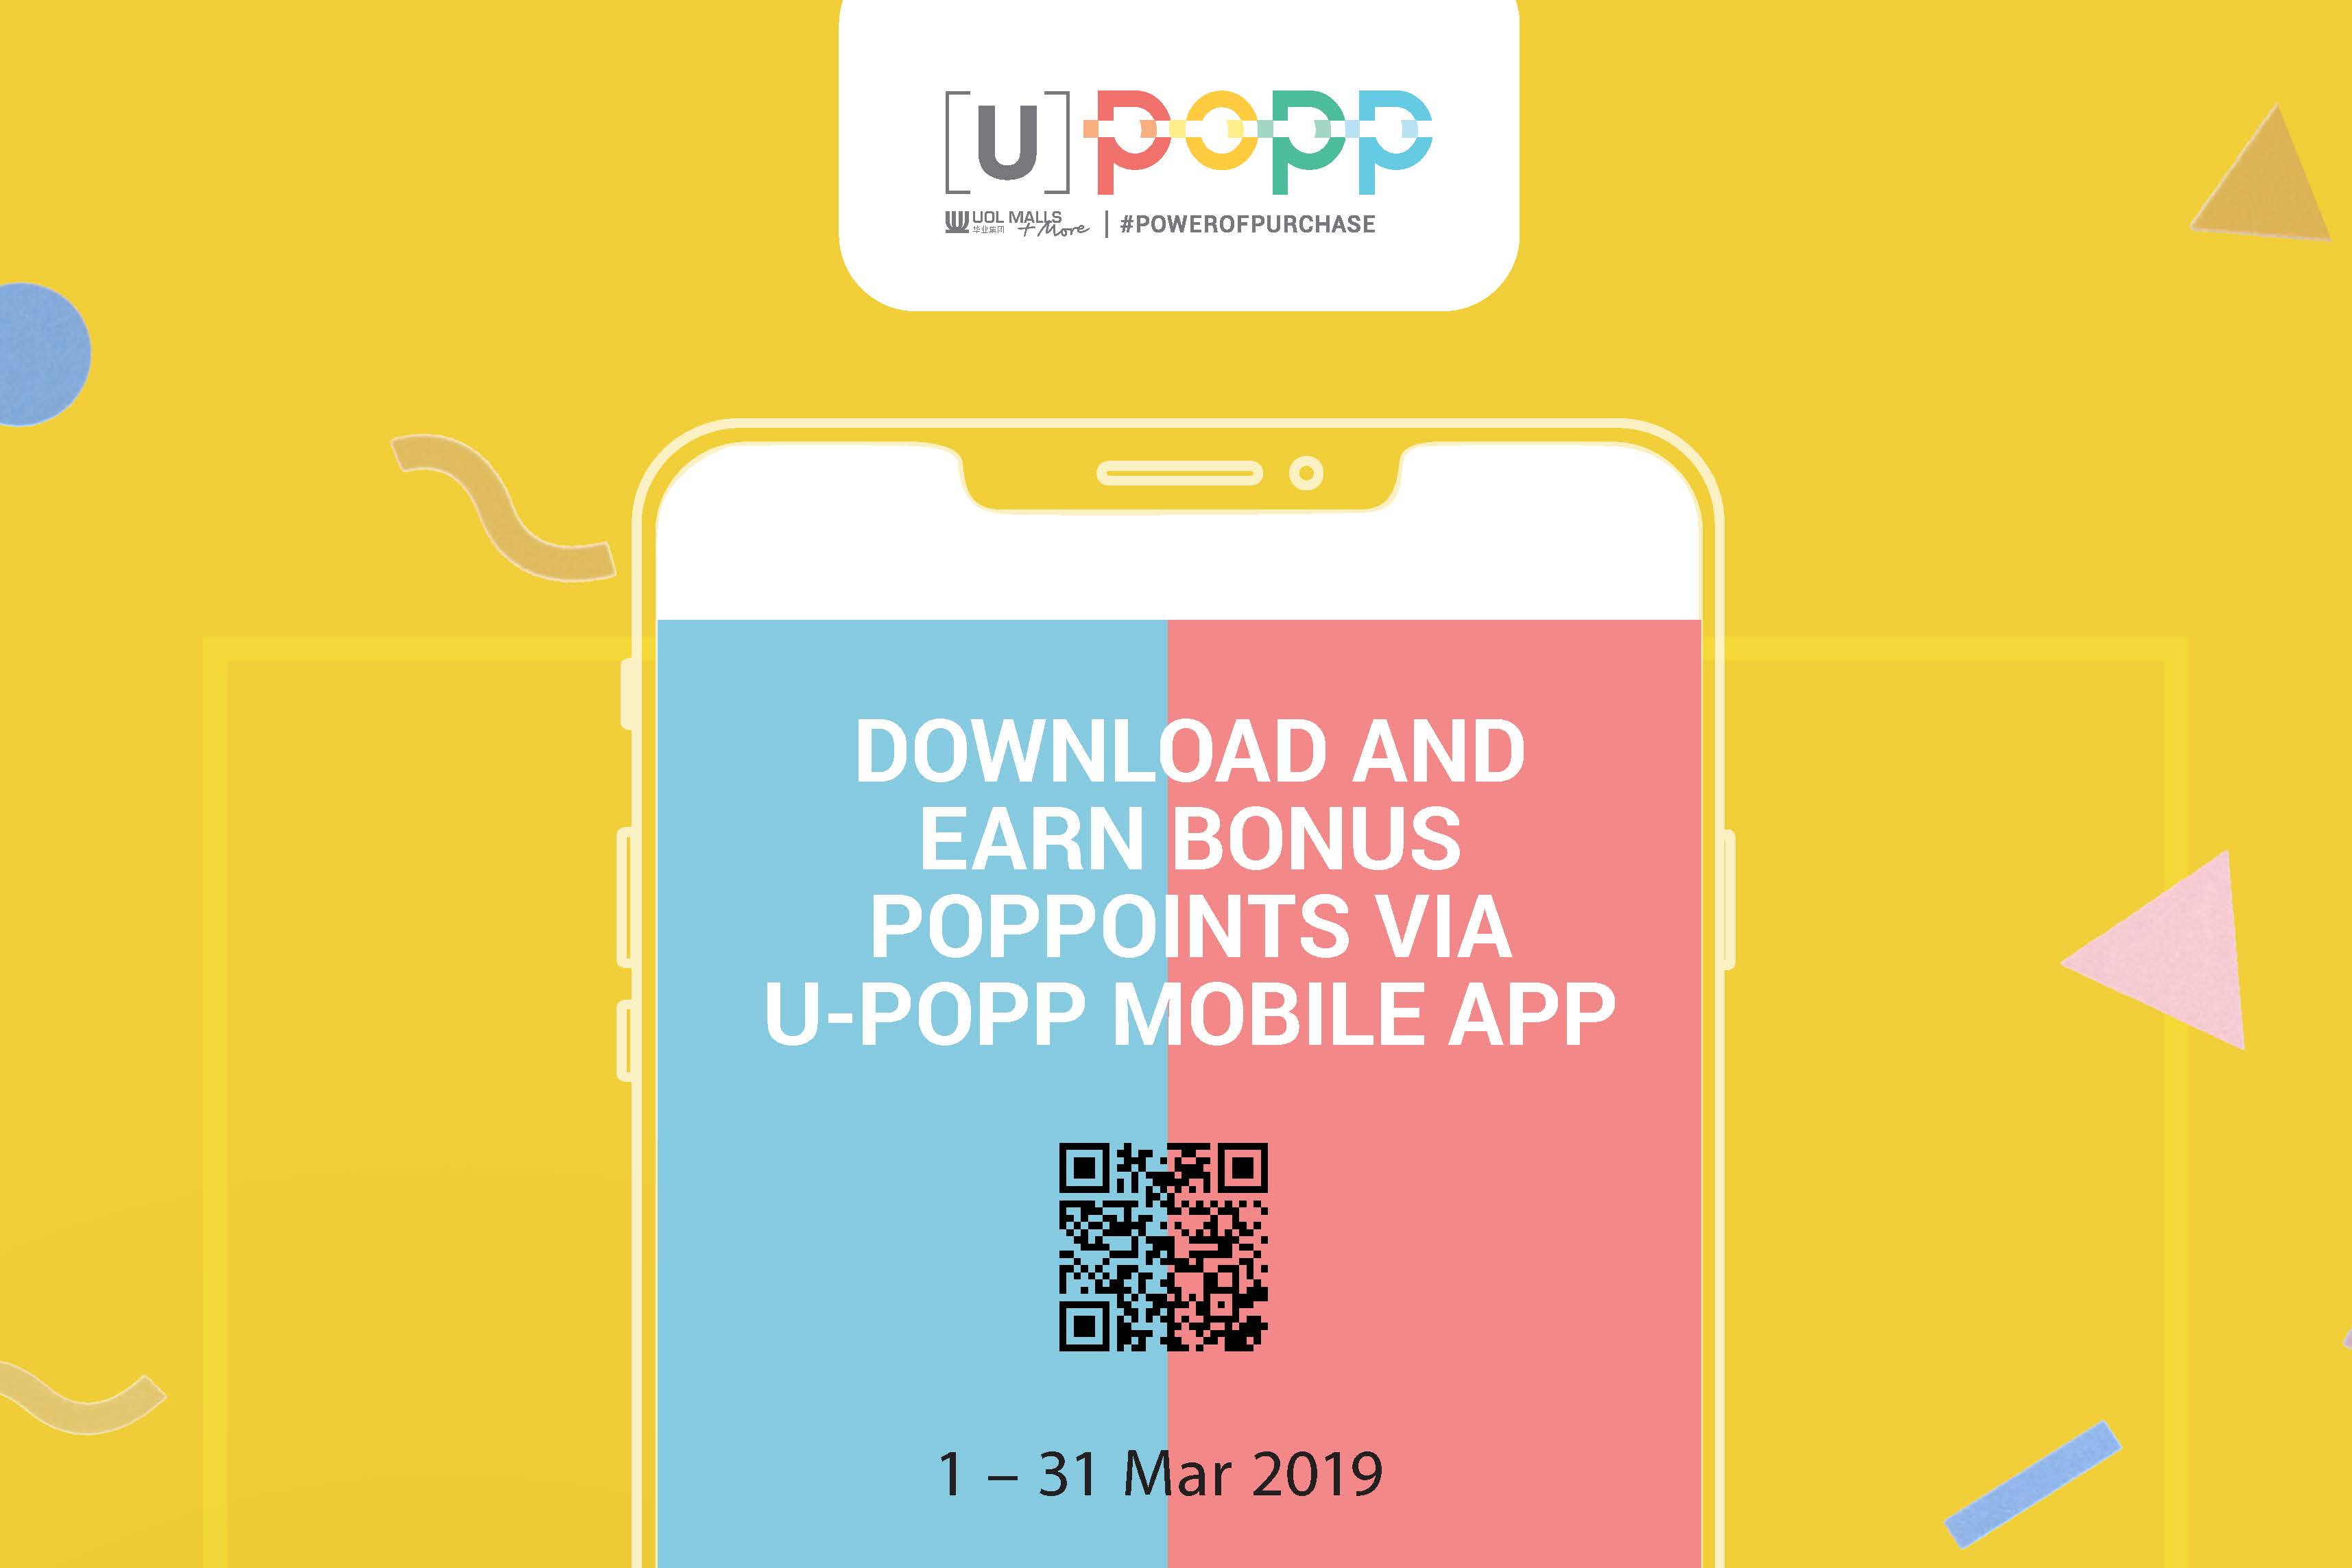 DOWNLOAD U-POPP MOBILE APP TO EARN BONUS POPPOINTS!